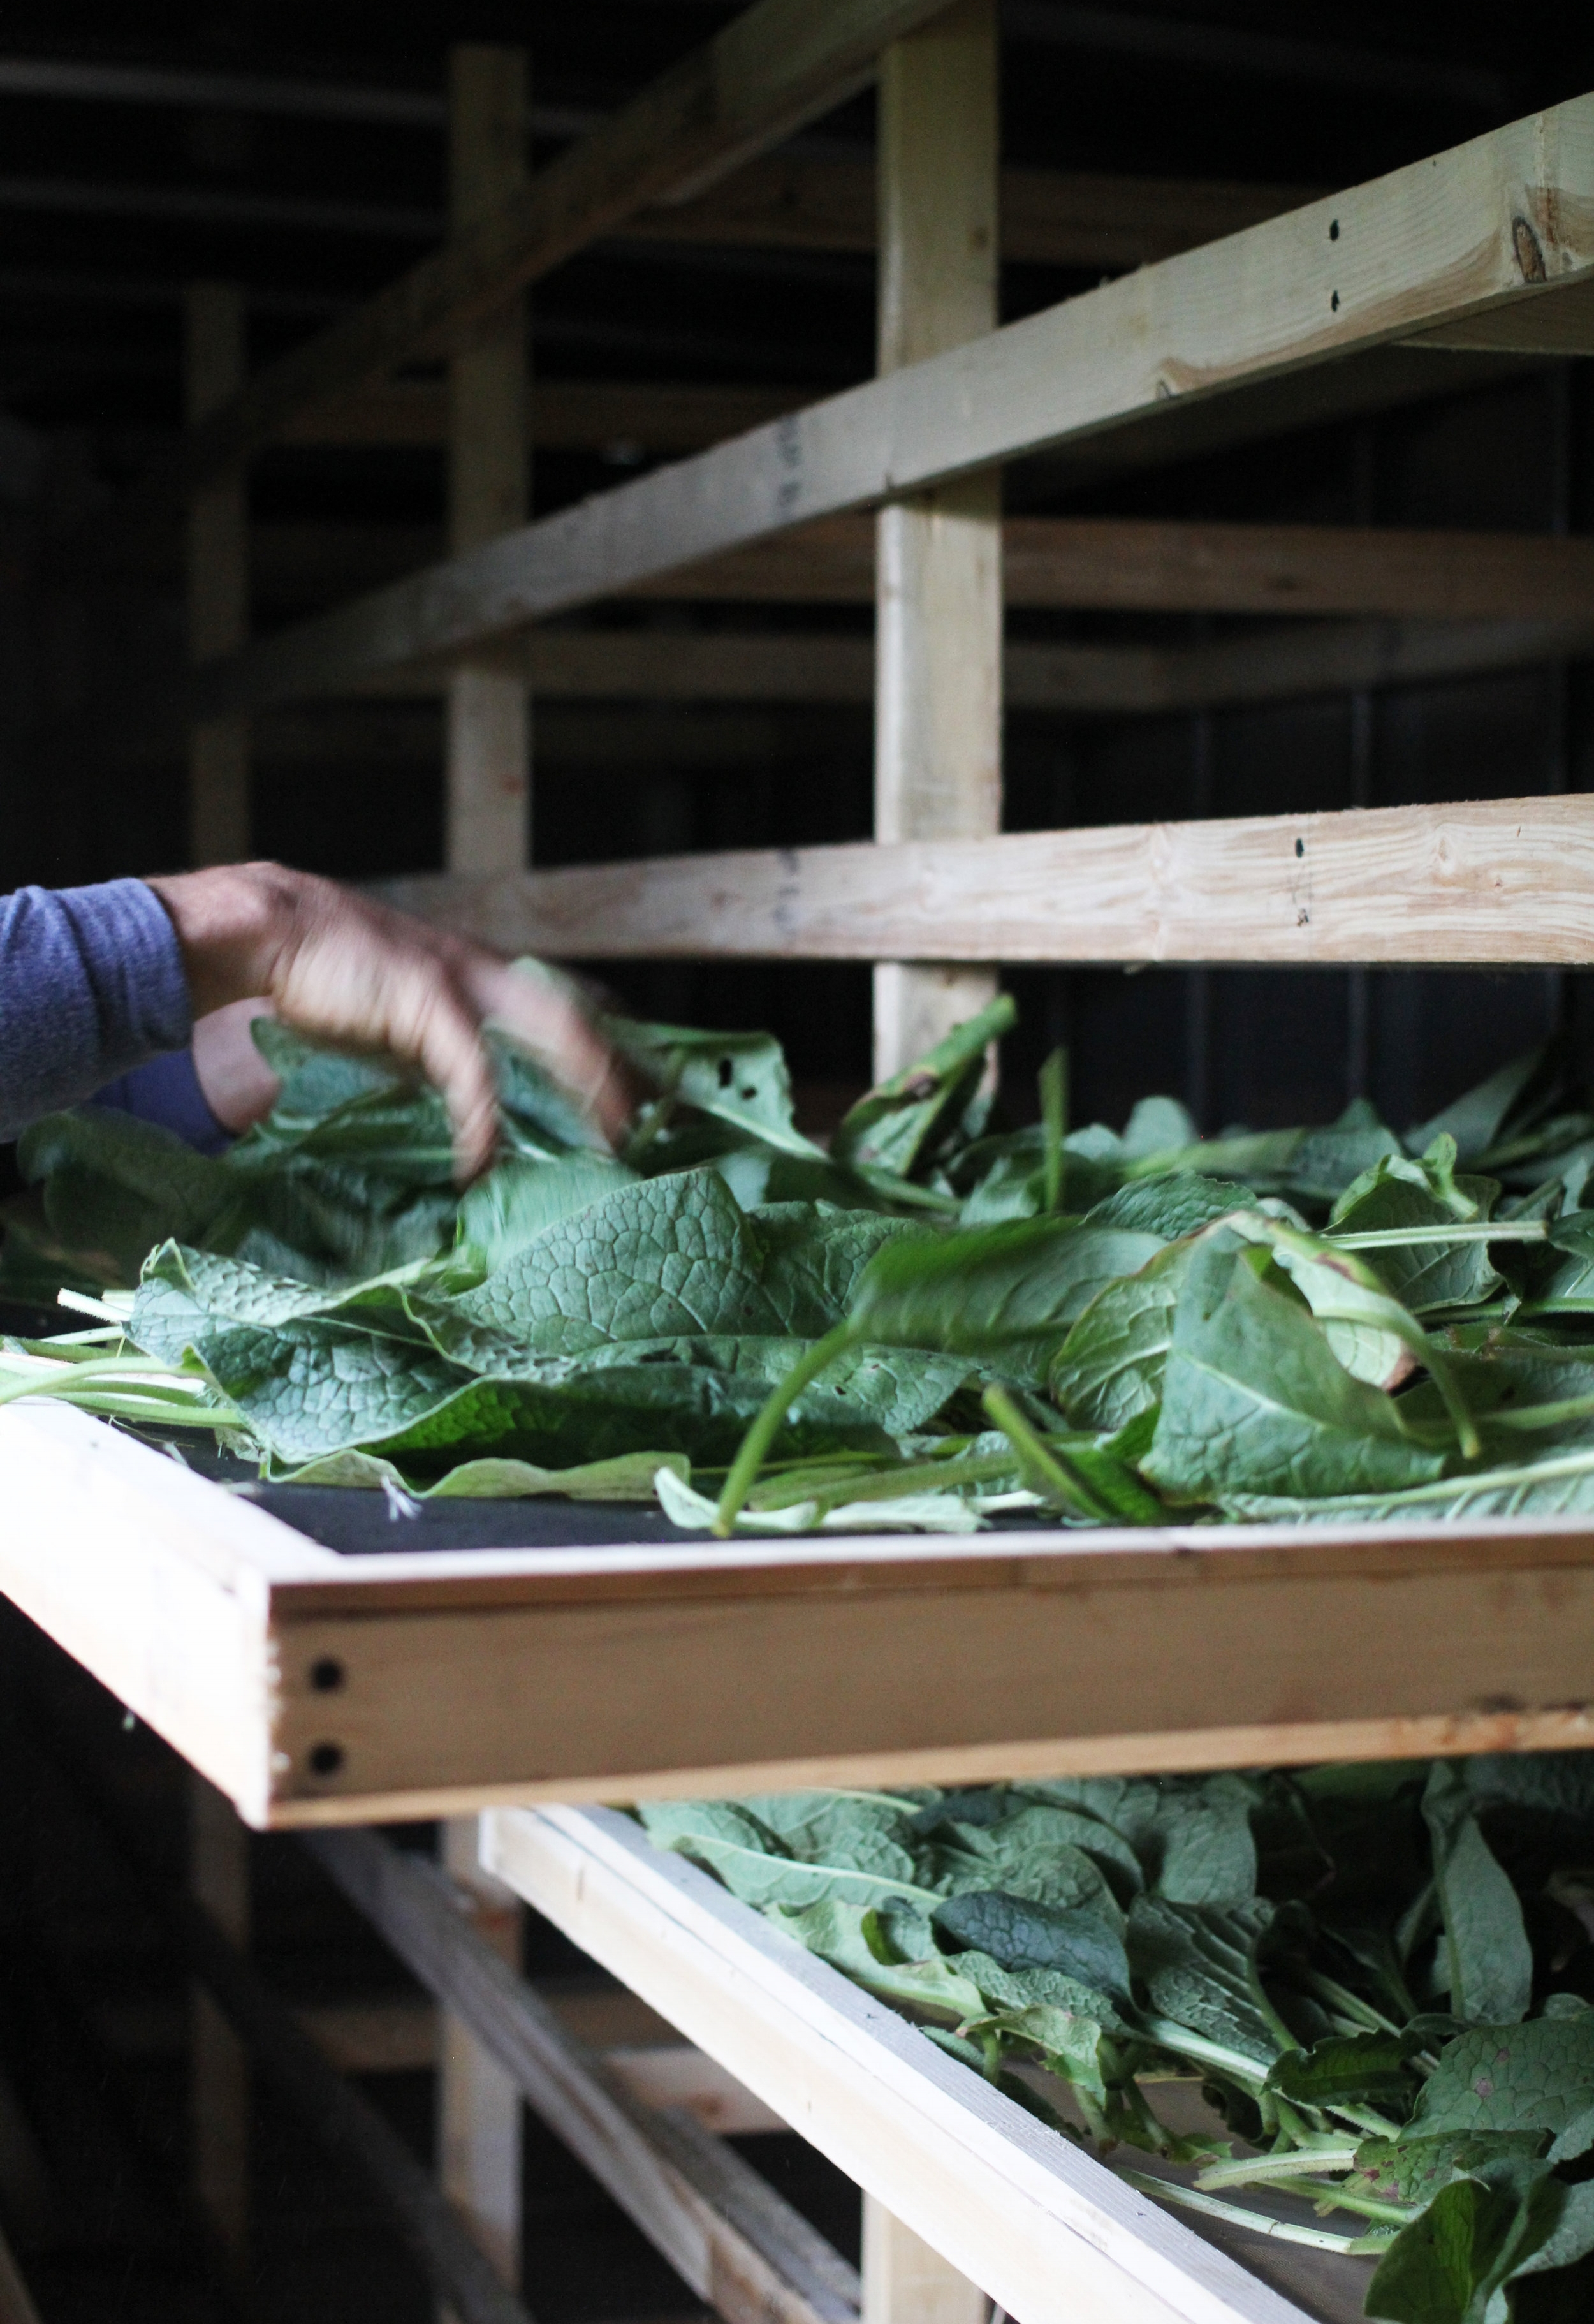 our drying shed includes 35 handmade drying racks installed in an insulated box truck. Comfrey is pictured here drying.